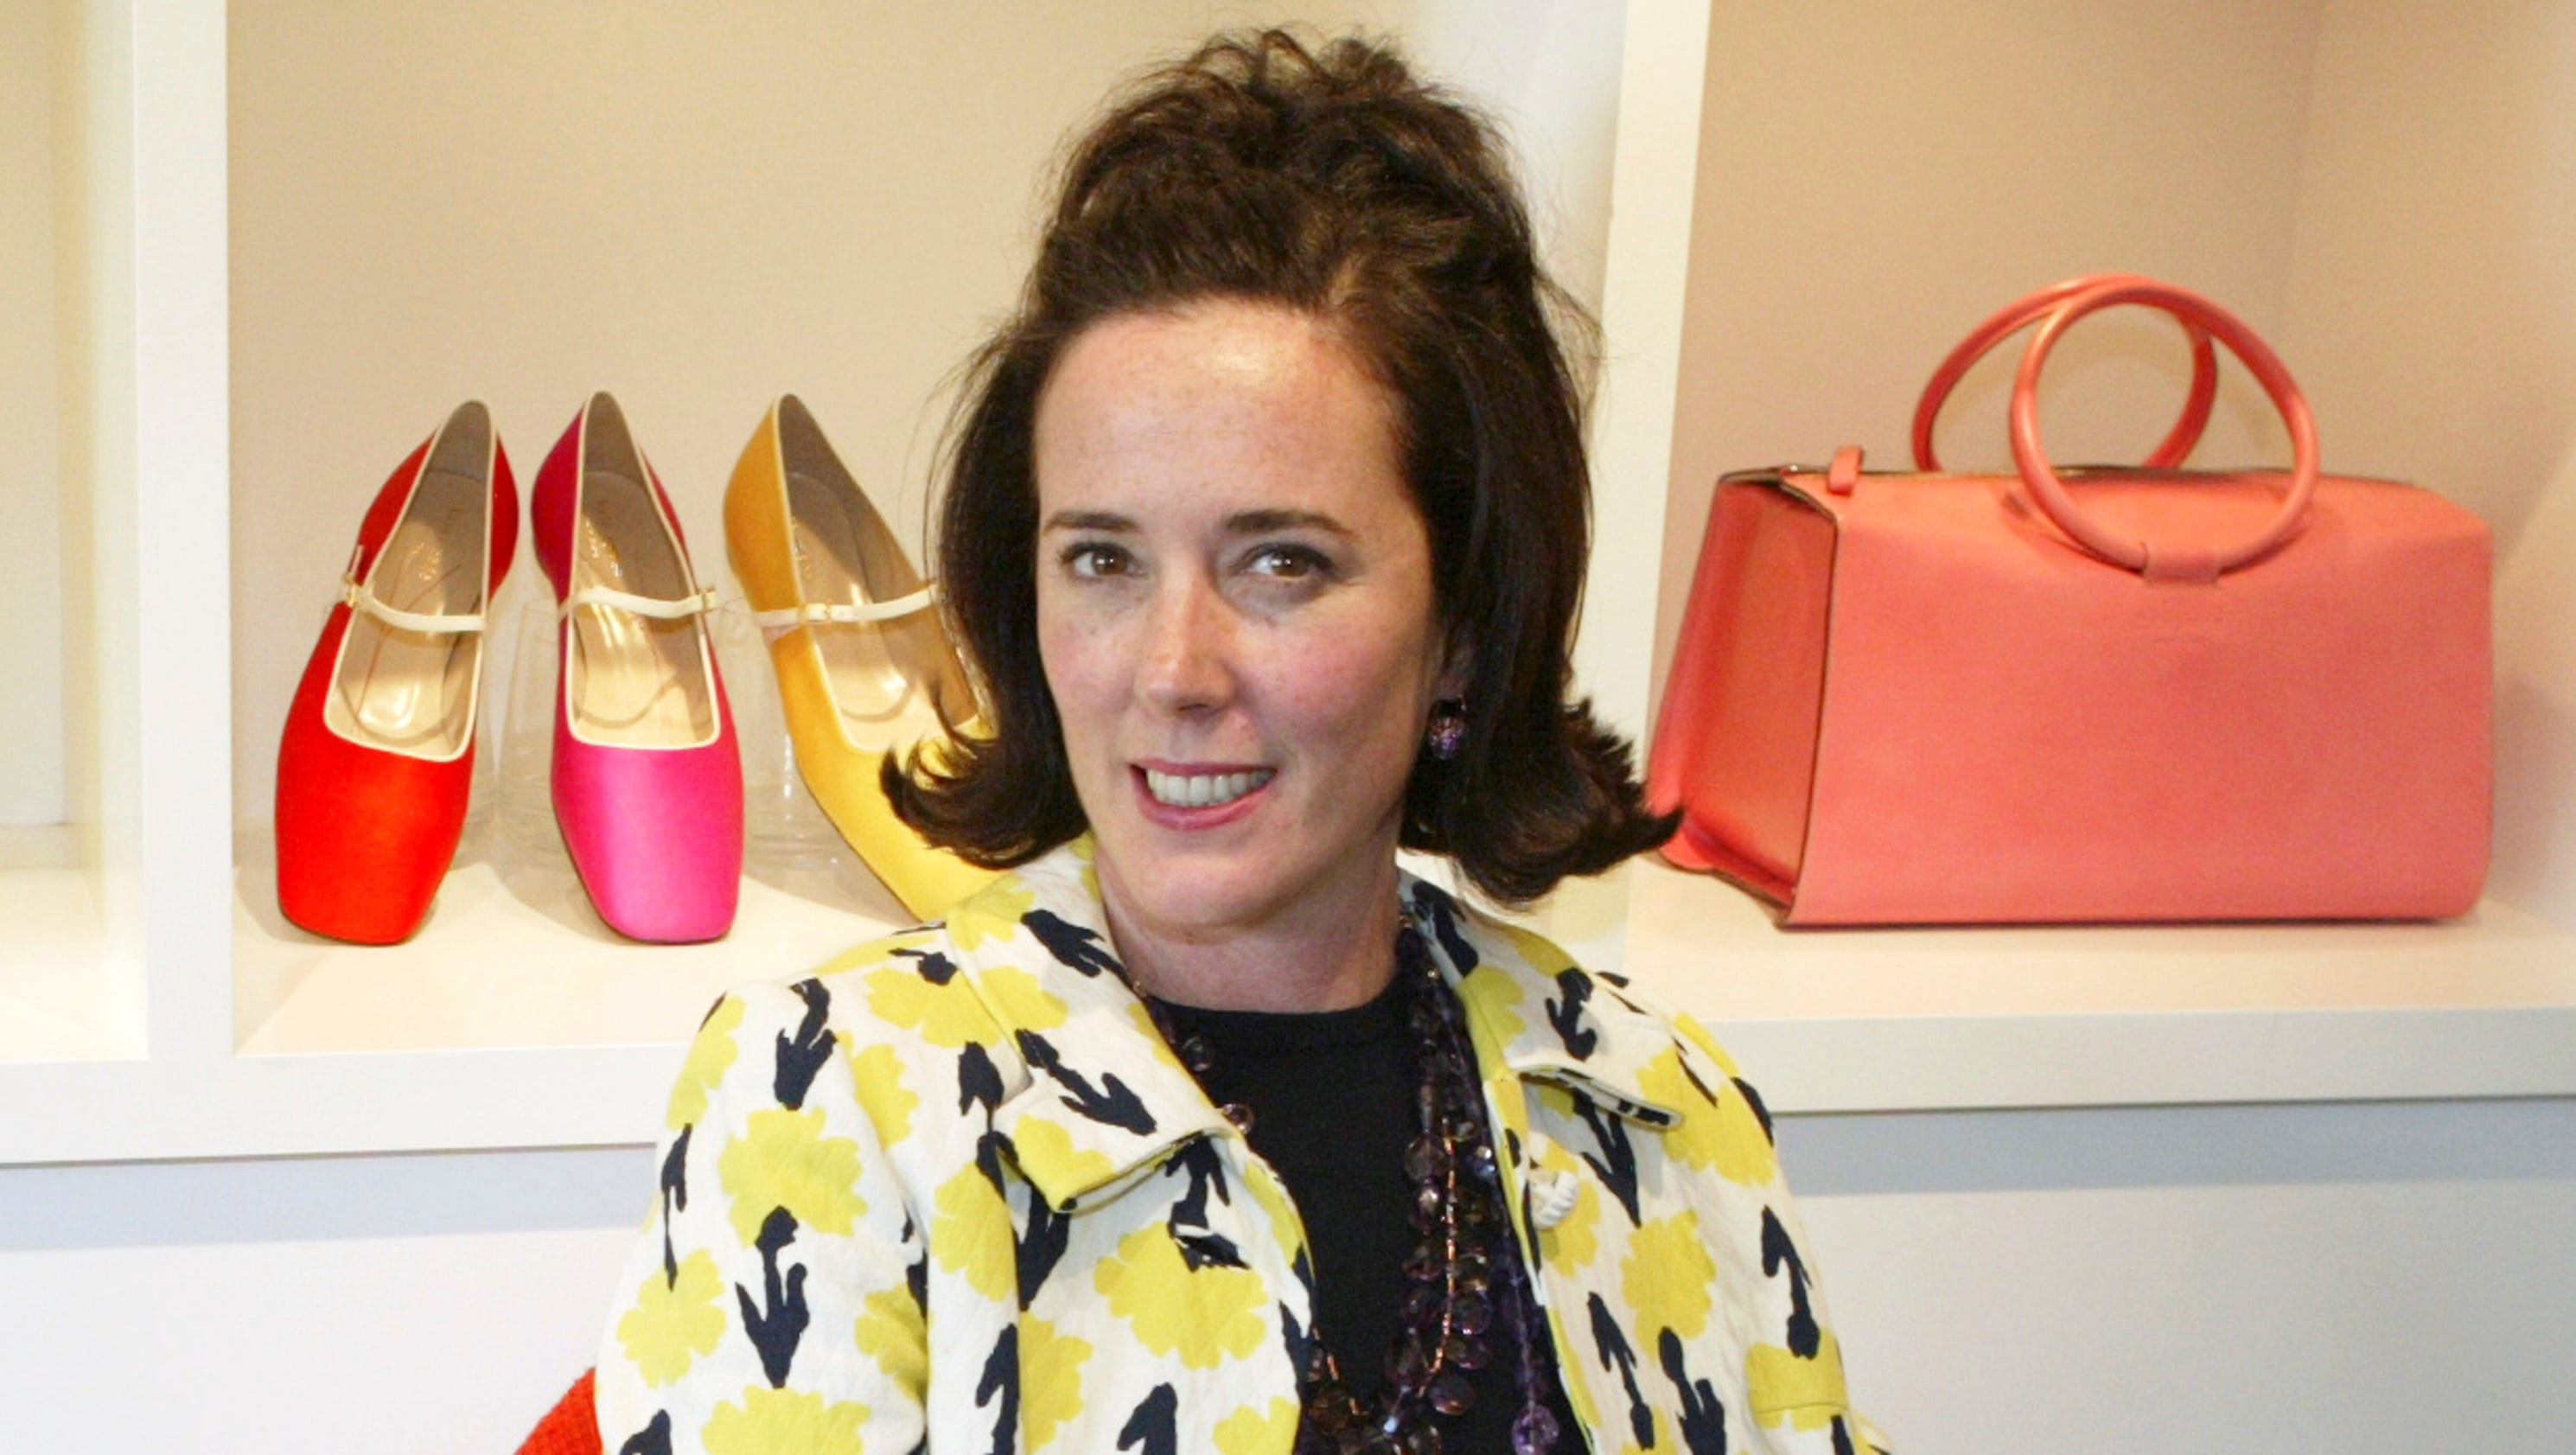 Kate Spade and Anthony Bourdain suicides reflect culture ...